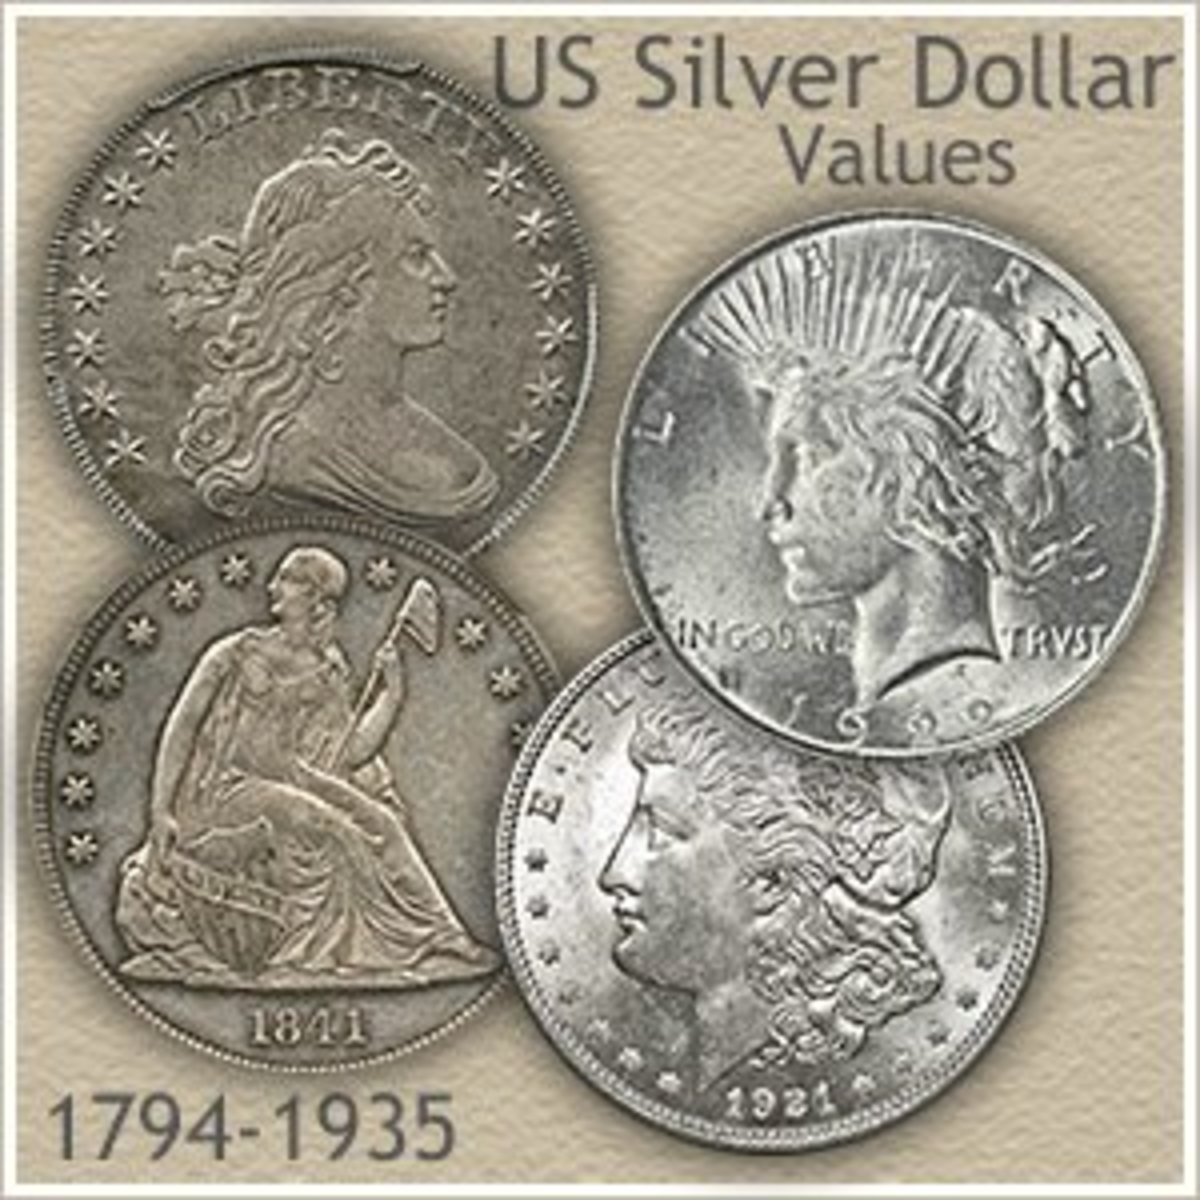 Back then coins were made out of silver not copper, nickel or brass.